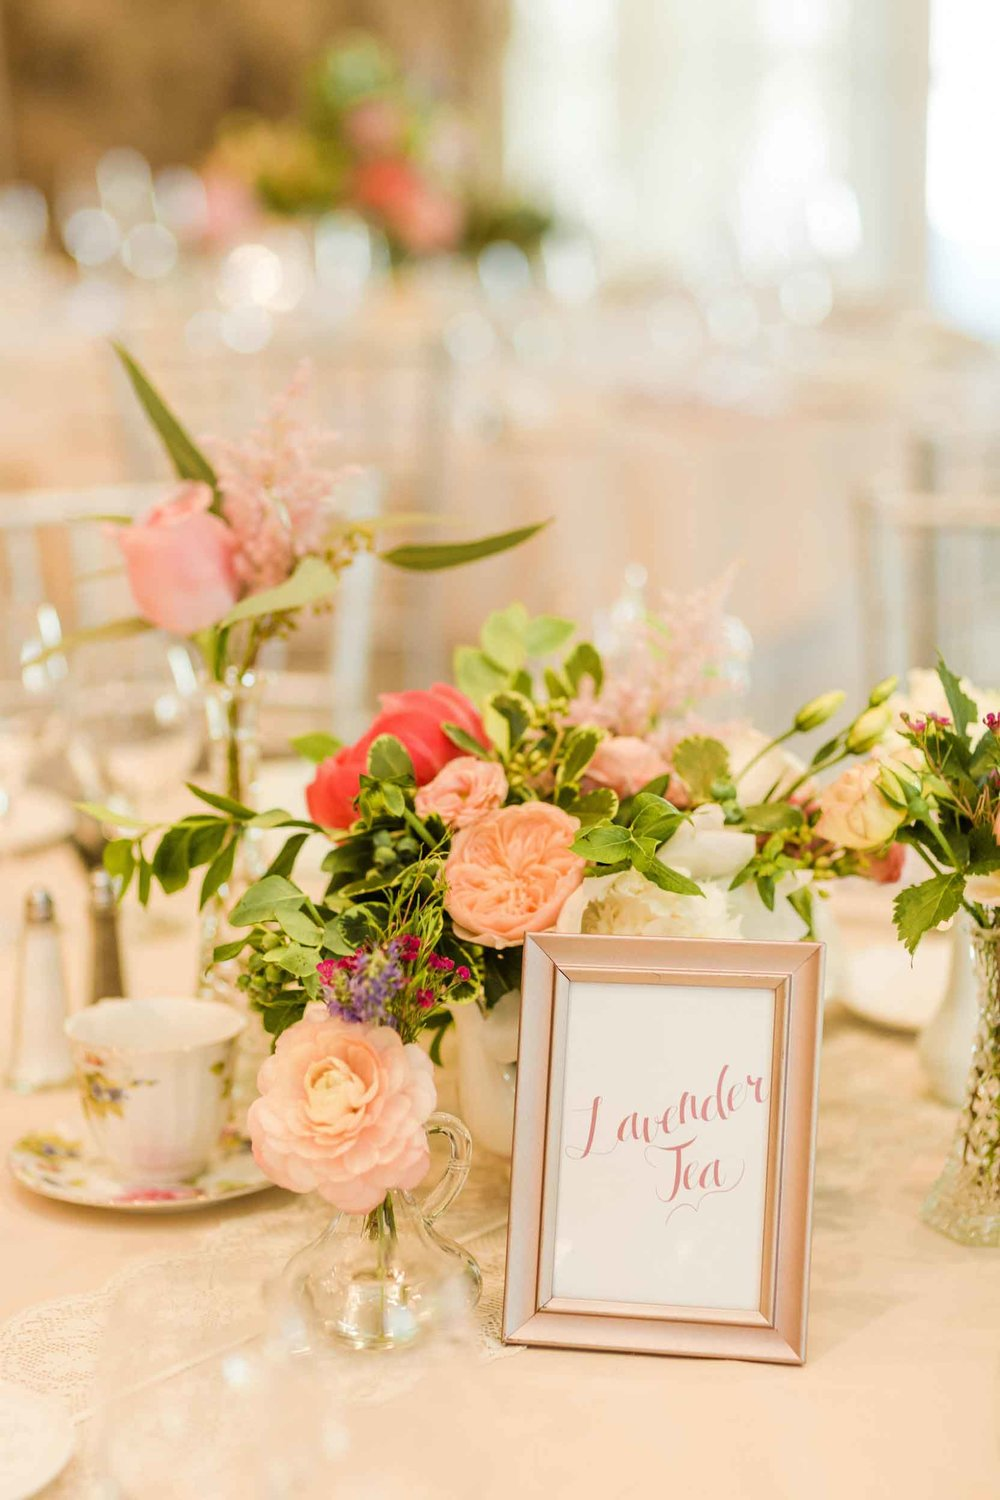 A-DIY-Vintage-and-Tea-Inspired-Wedding Table Decor